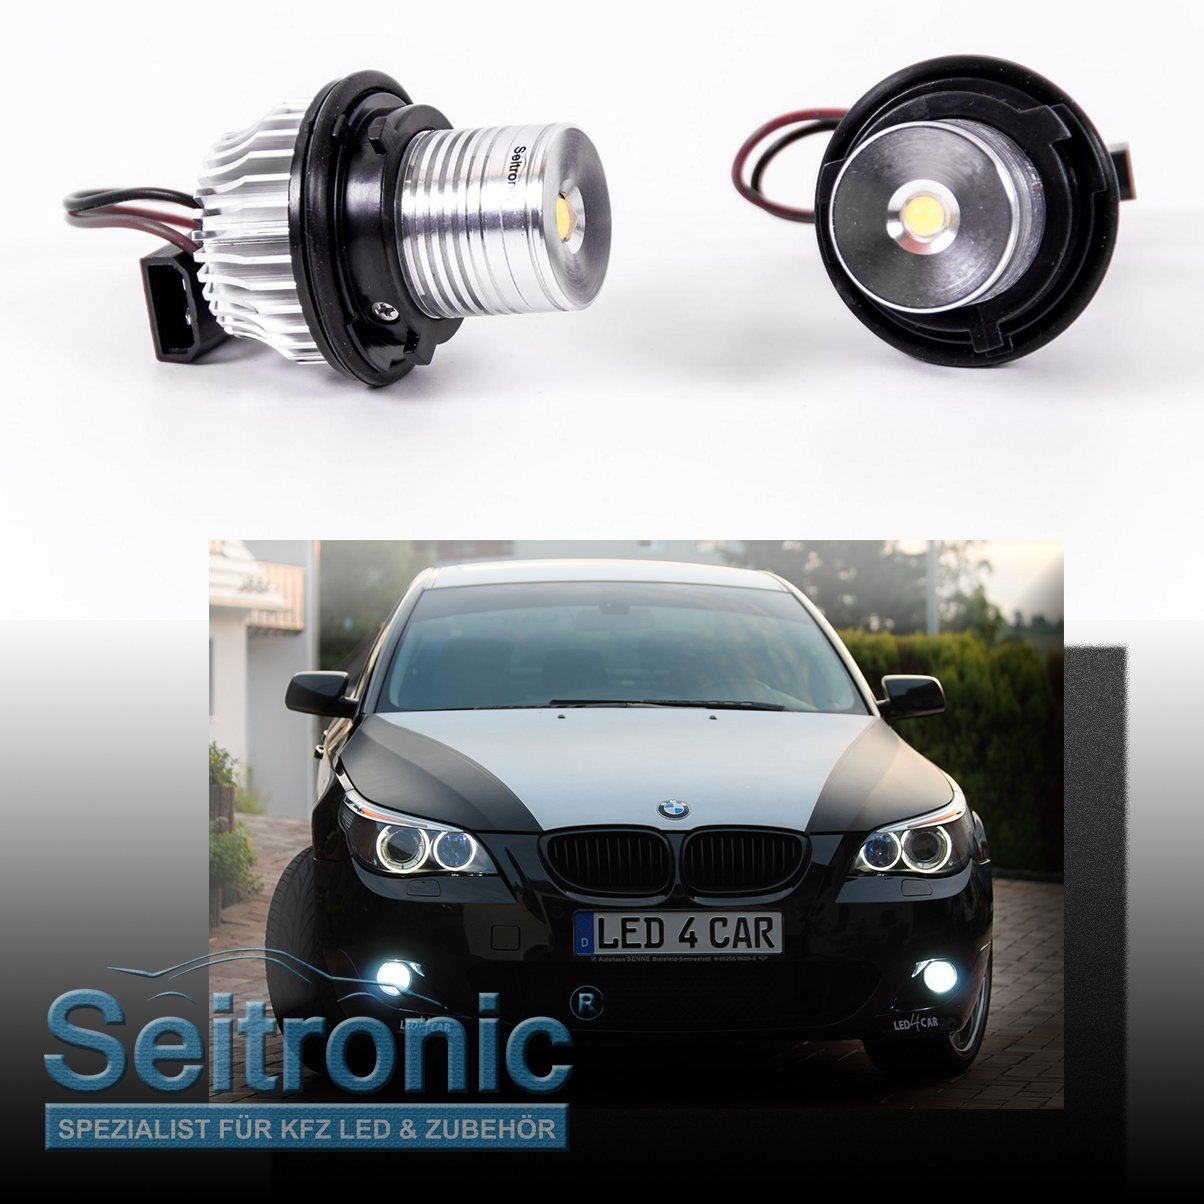 Burner Light Xenon White No Error Message With Long Life And Parking Light Use. Seitronic LED Angel Eyes Efficient 5/Â Watt and a Thickness of 8000/â Kelvin